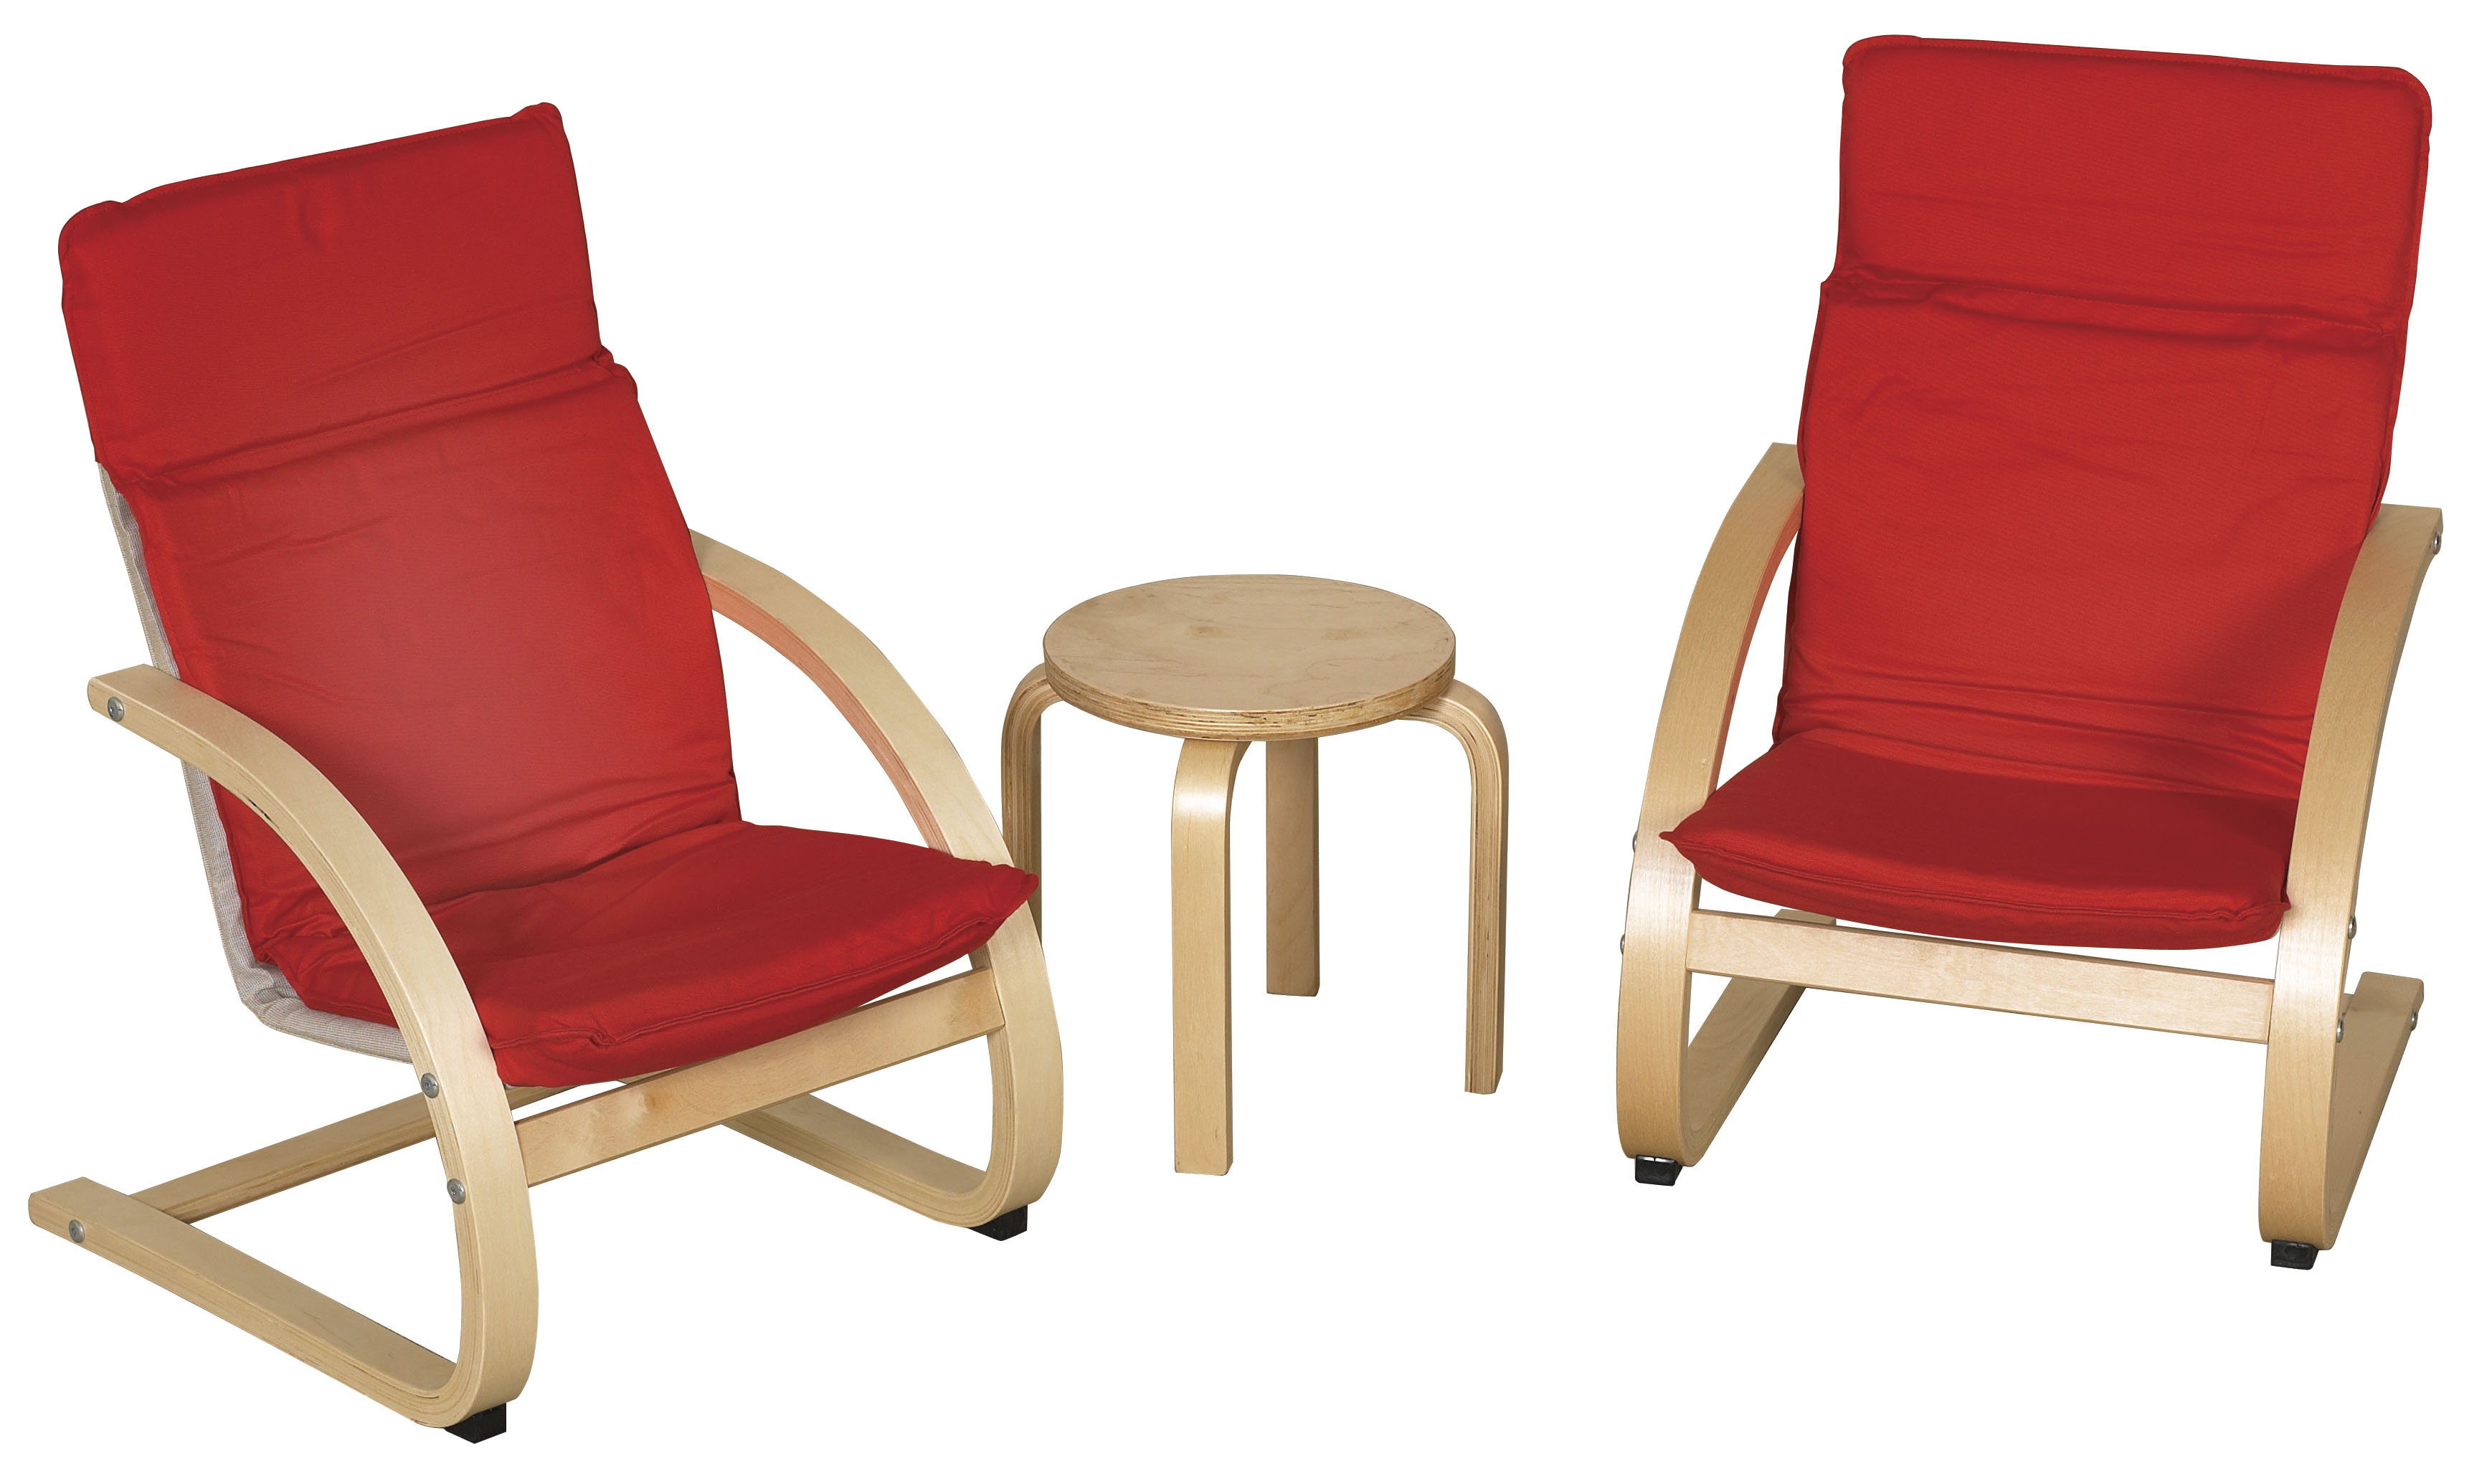 Offex Preschool Classroom Kids Bentwood Comfort Chair Set with Table Red